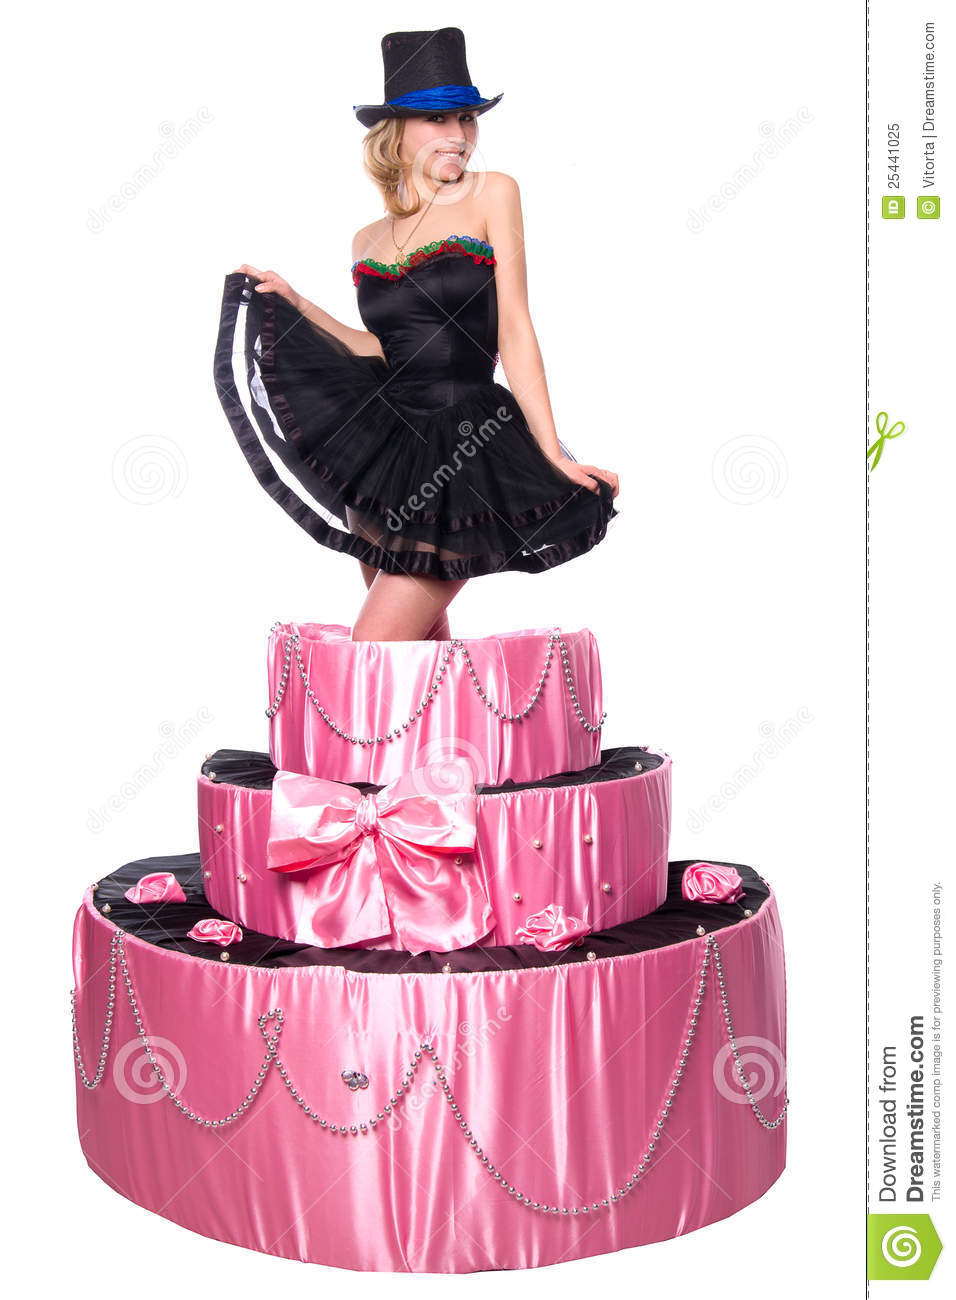 Girl A Surprise Gift Jumps Out Of The Toy Cake Stock